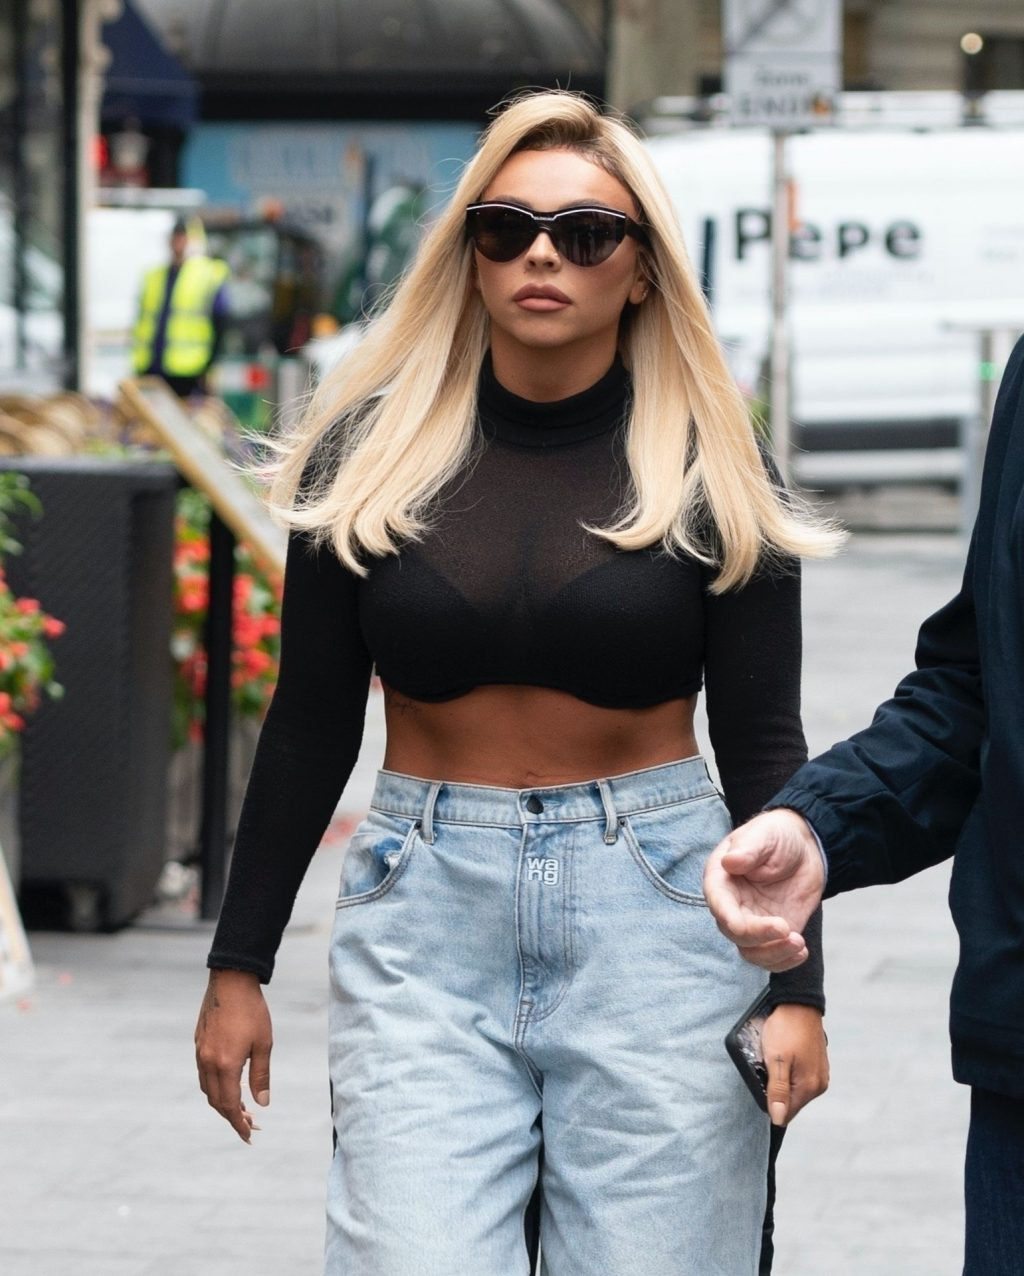 Jesy Nelson Displays Her Cleavage in London (41 Photos)